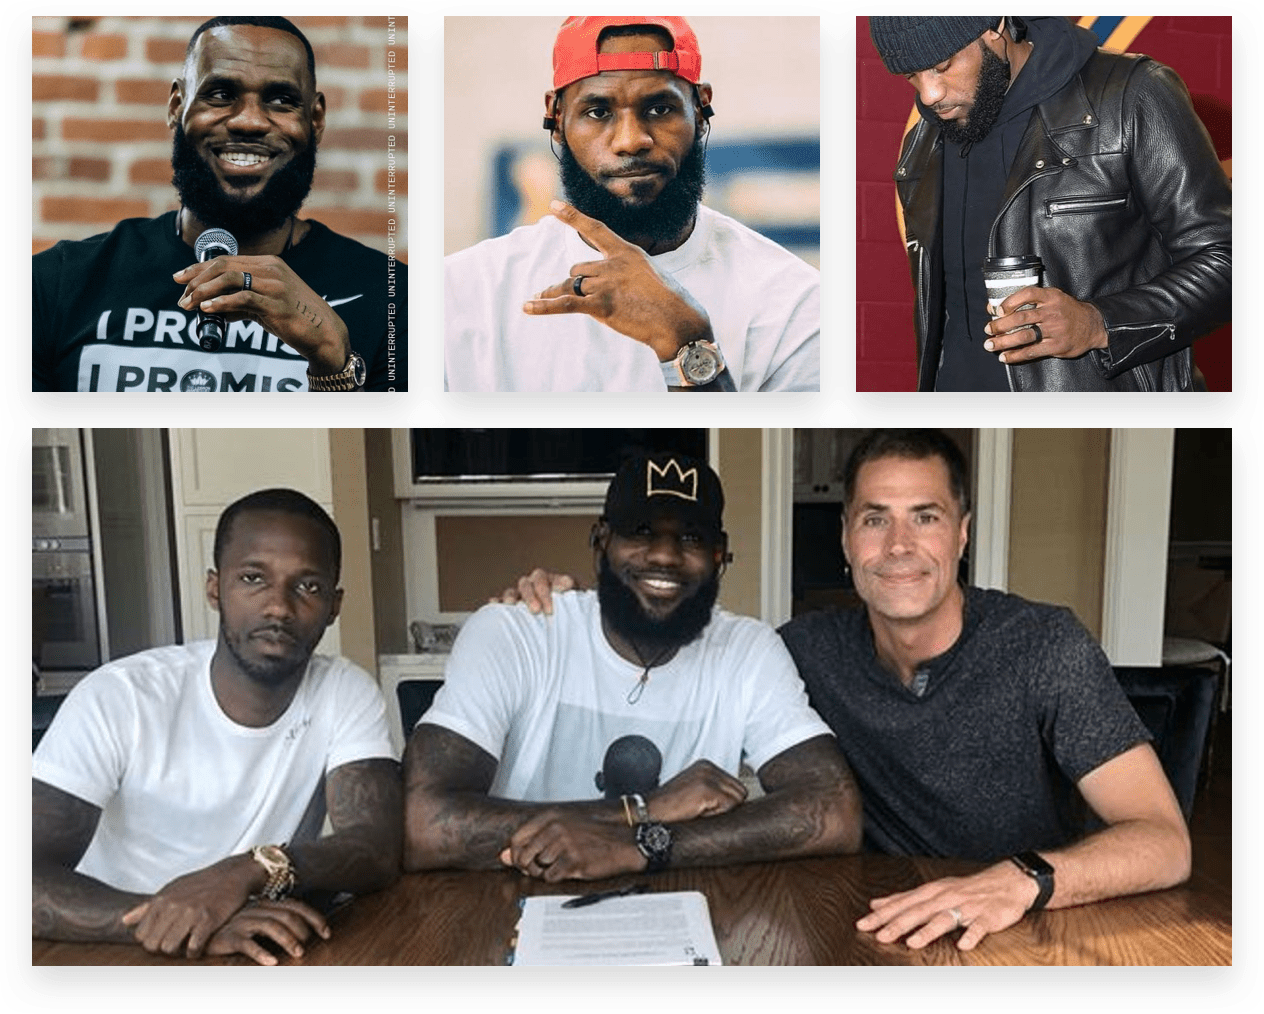 Lebron James acts as an influencer to the influencers for ecommerce brand QALO